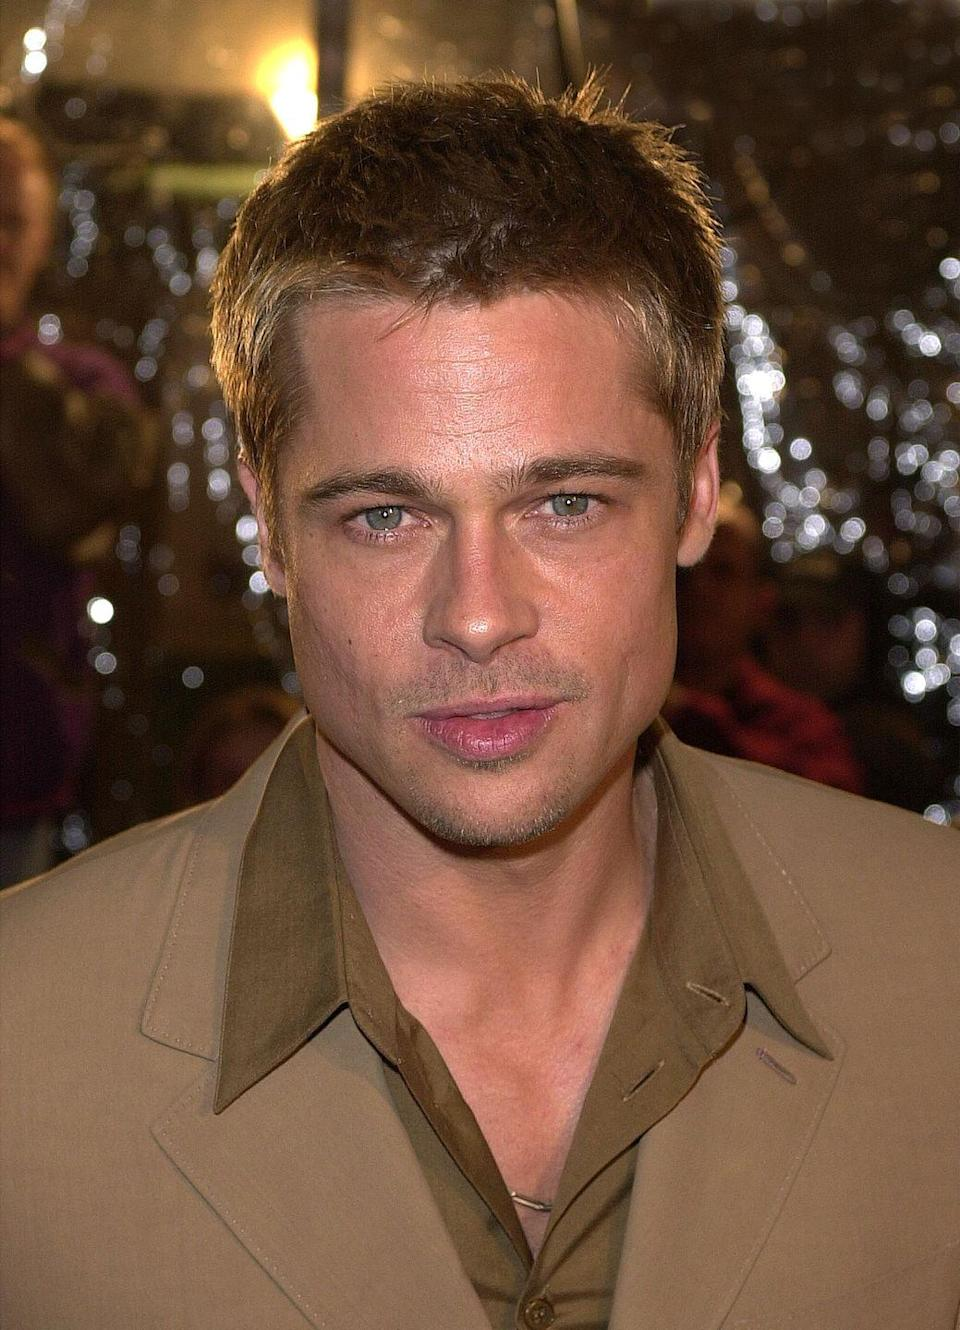 <p>Brad Pitt kept it pretty consistent in the early 2000s with this movie star cut featuring short, spiky blonde hair. </p>